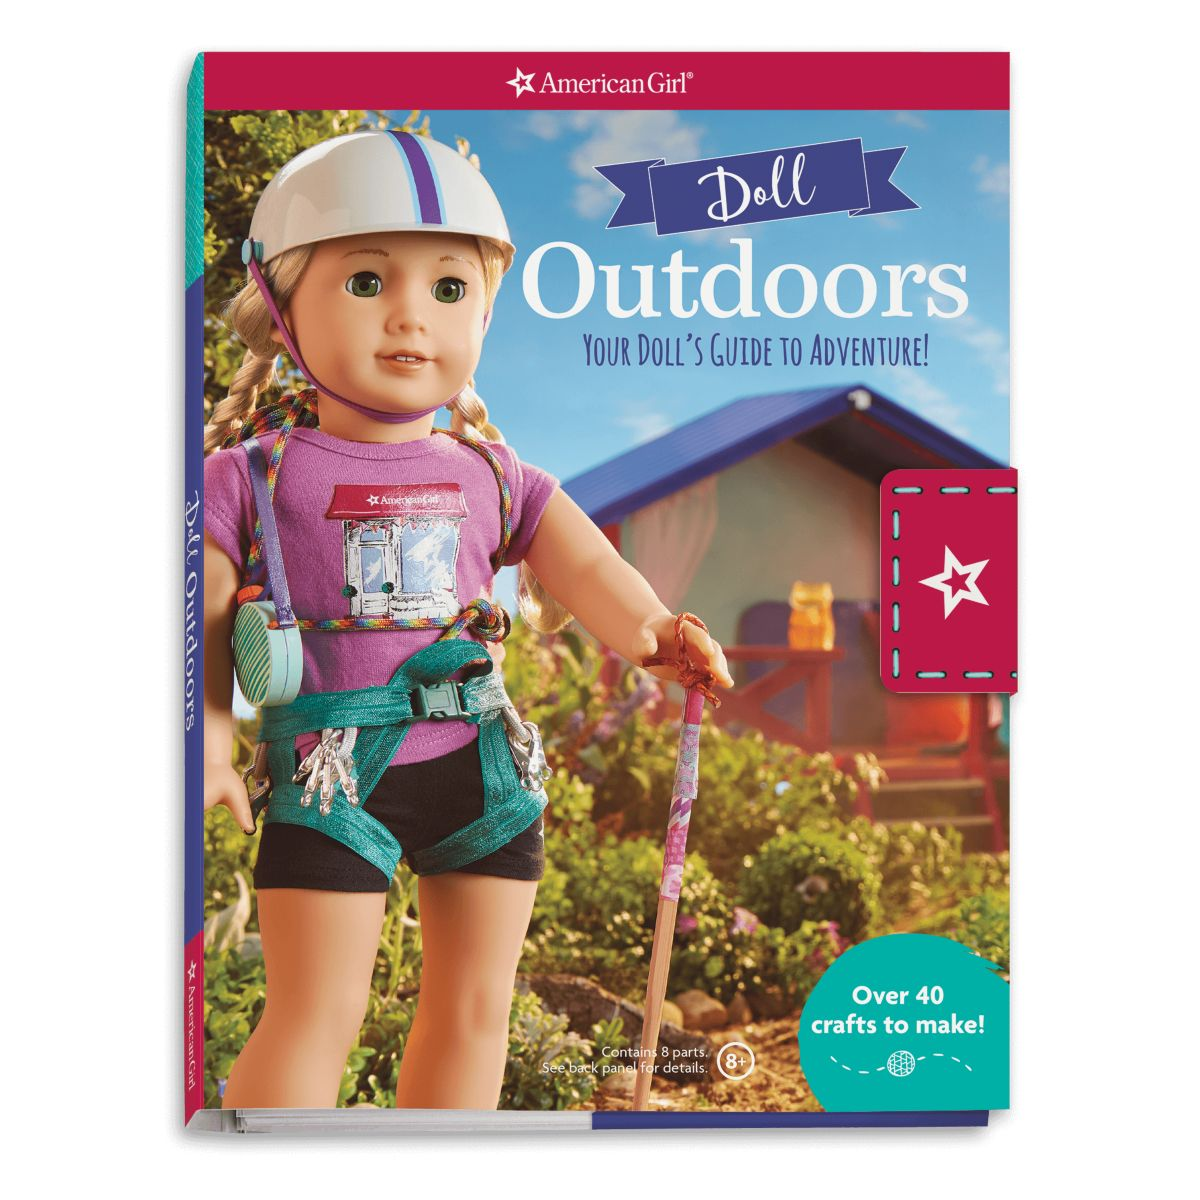 Doll Outdoors